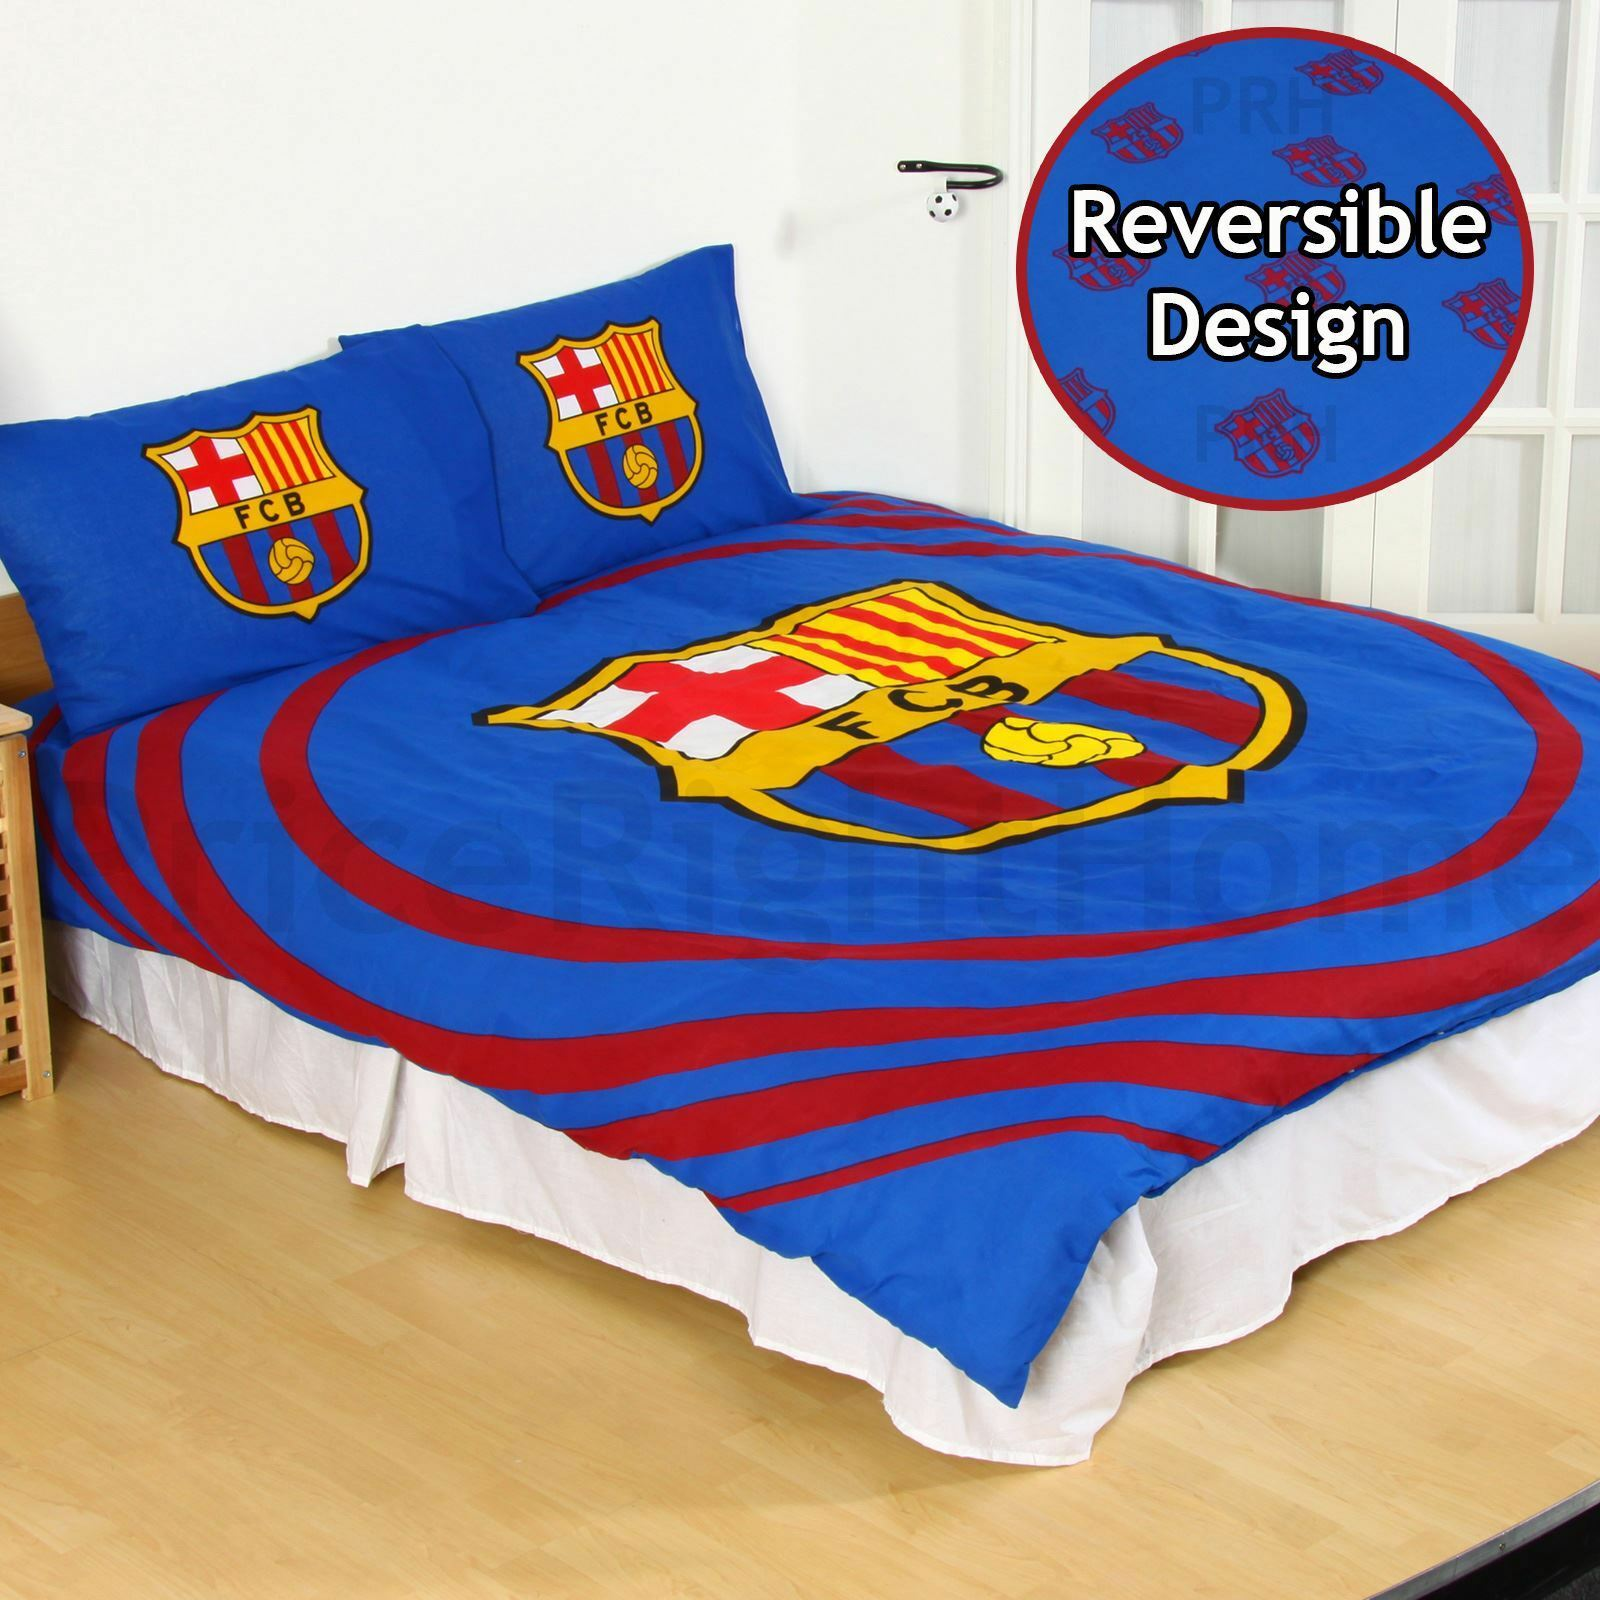 Boys Double Quilt Cover Fc Pulse Double Cover Set Boys Club Crest 2 In 1 Design